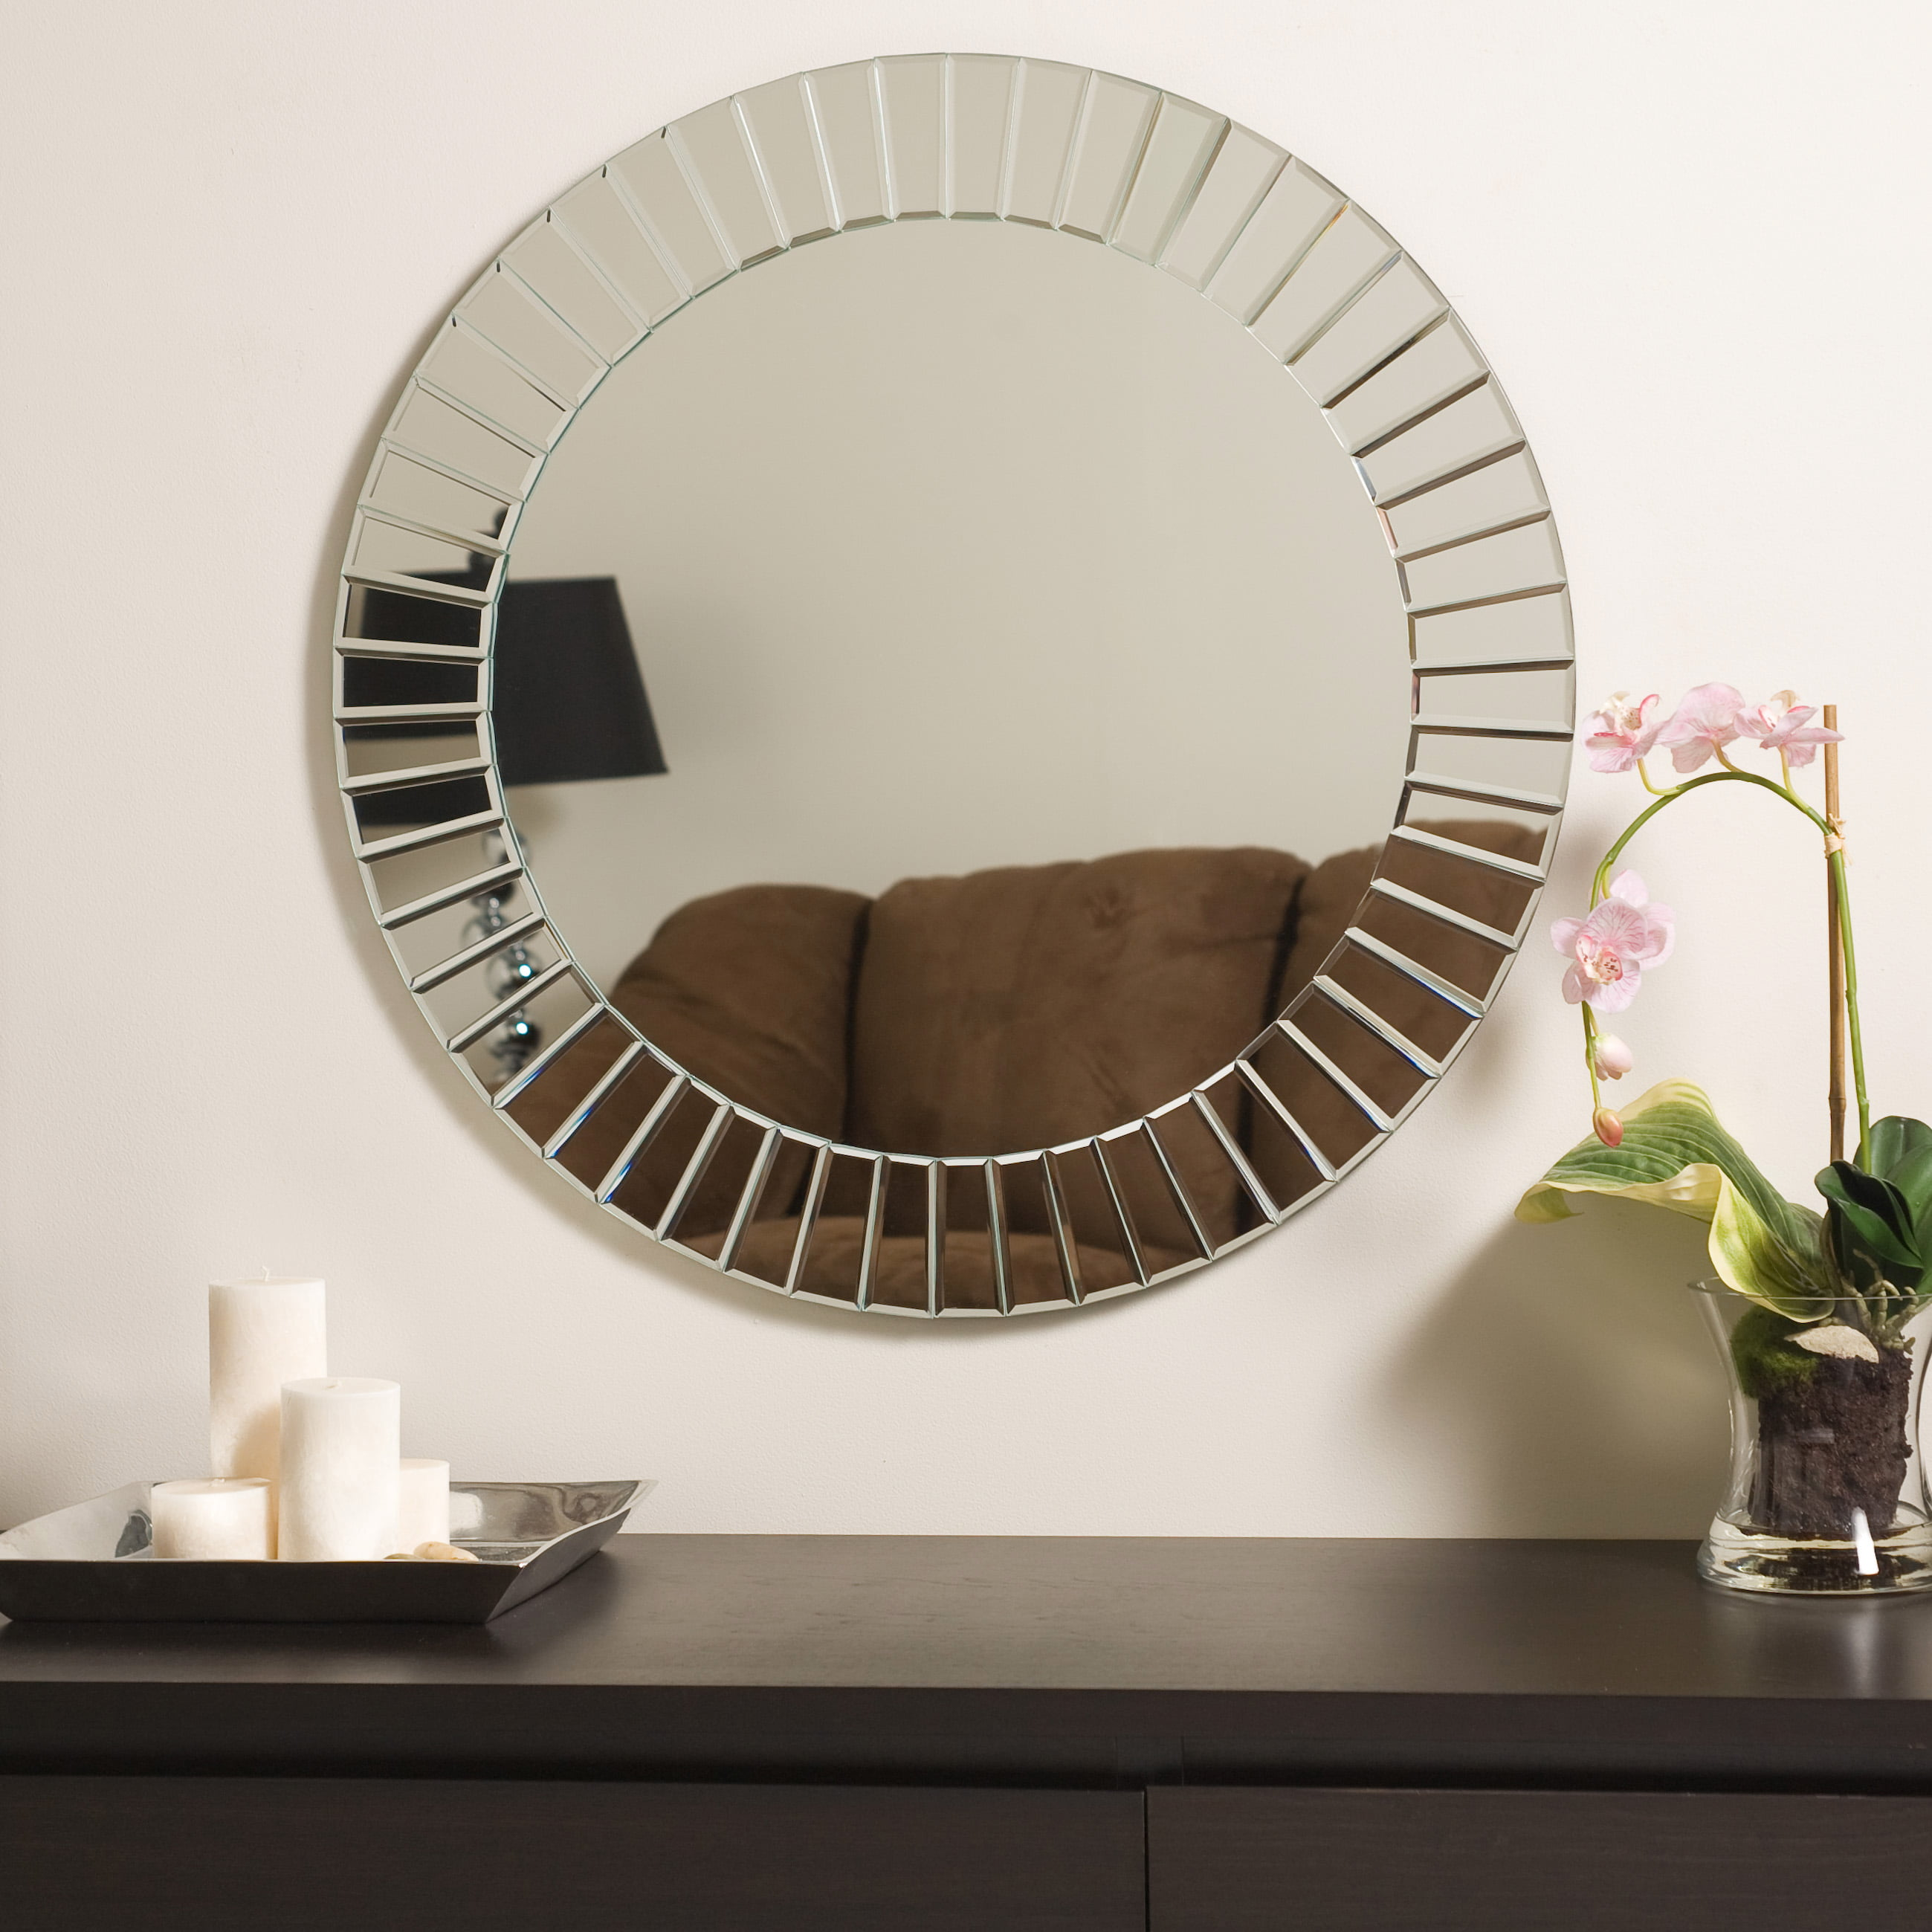 Large 27 6 Round Beveled Glow Glam Modern Decorative Mirror By Decor Wonderland Walmart Com Walmart Com